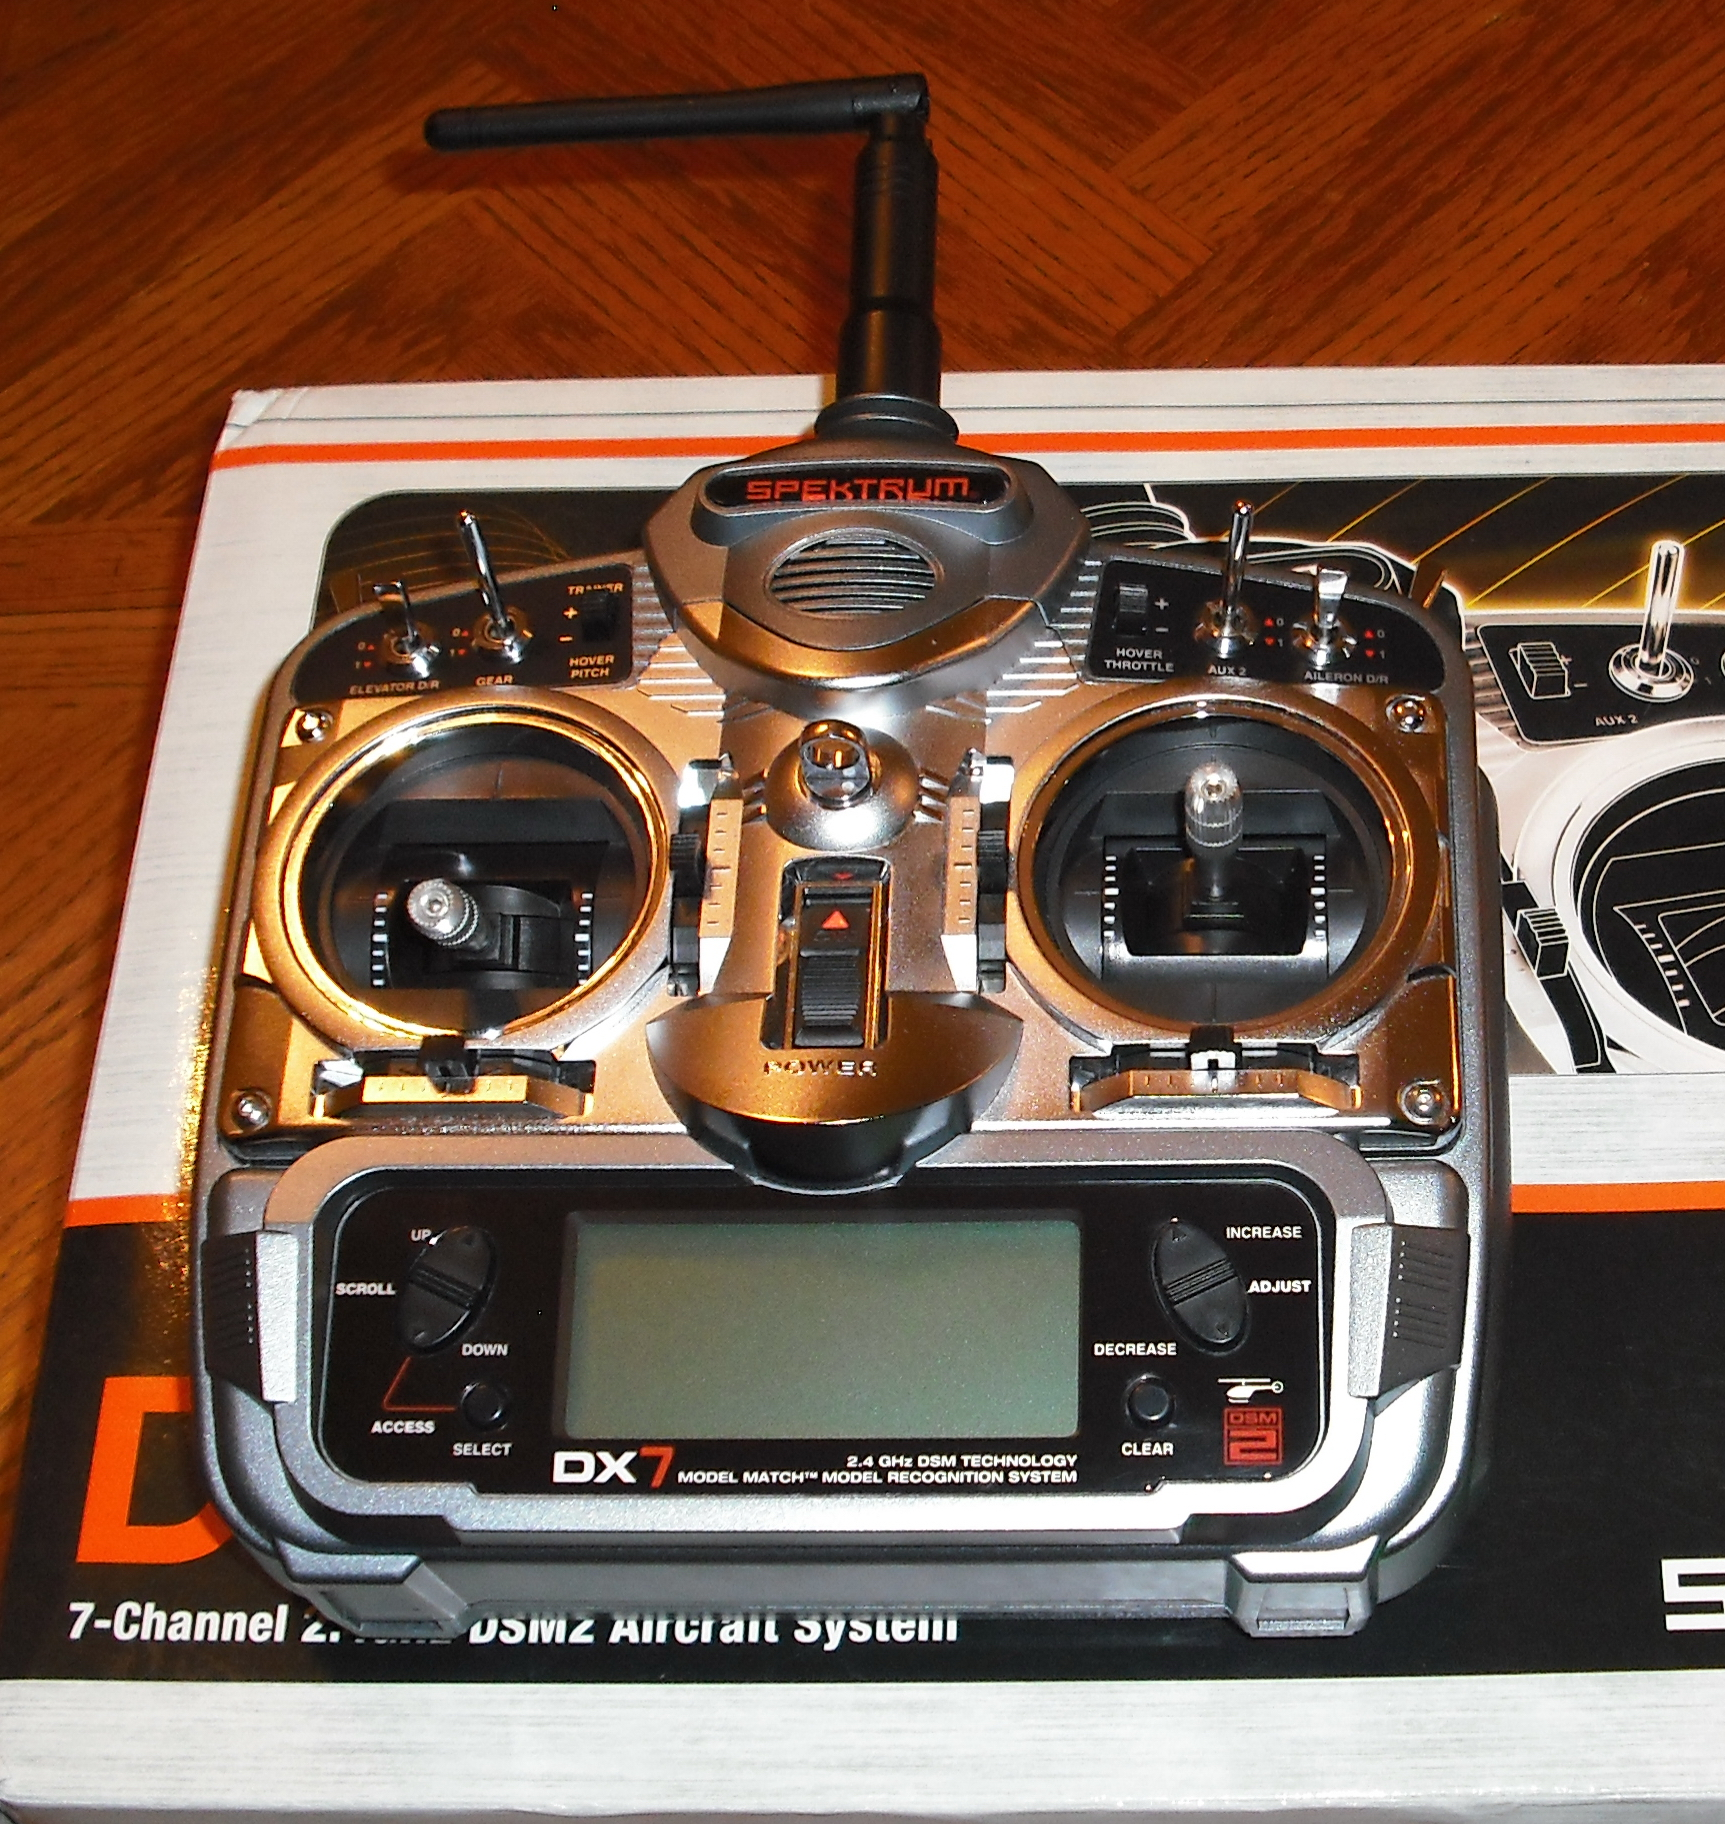 Spektrum DX7 Transmitter